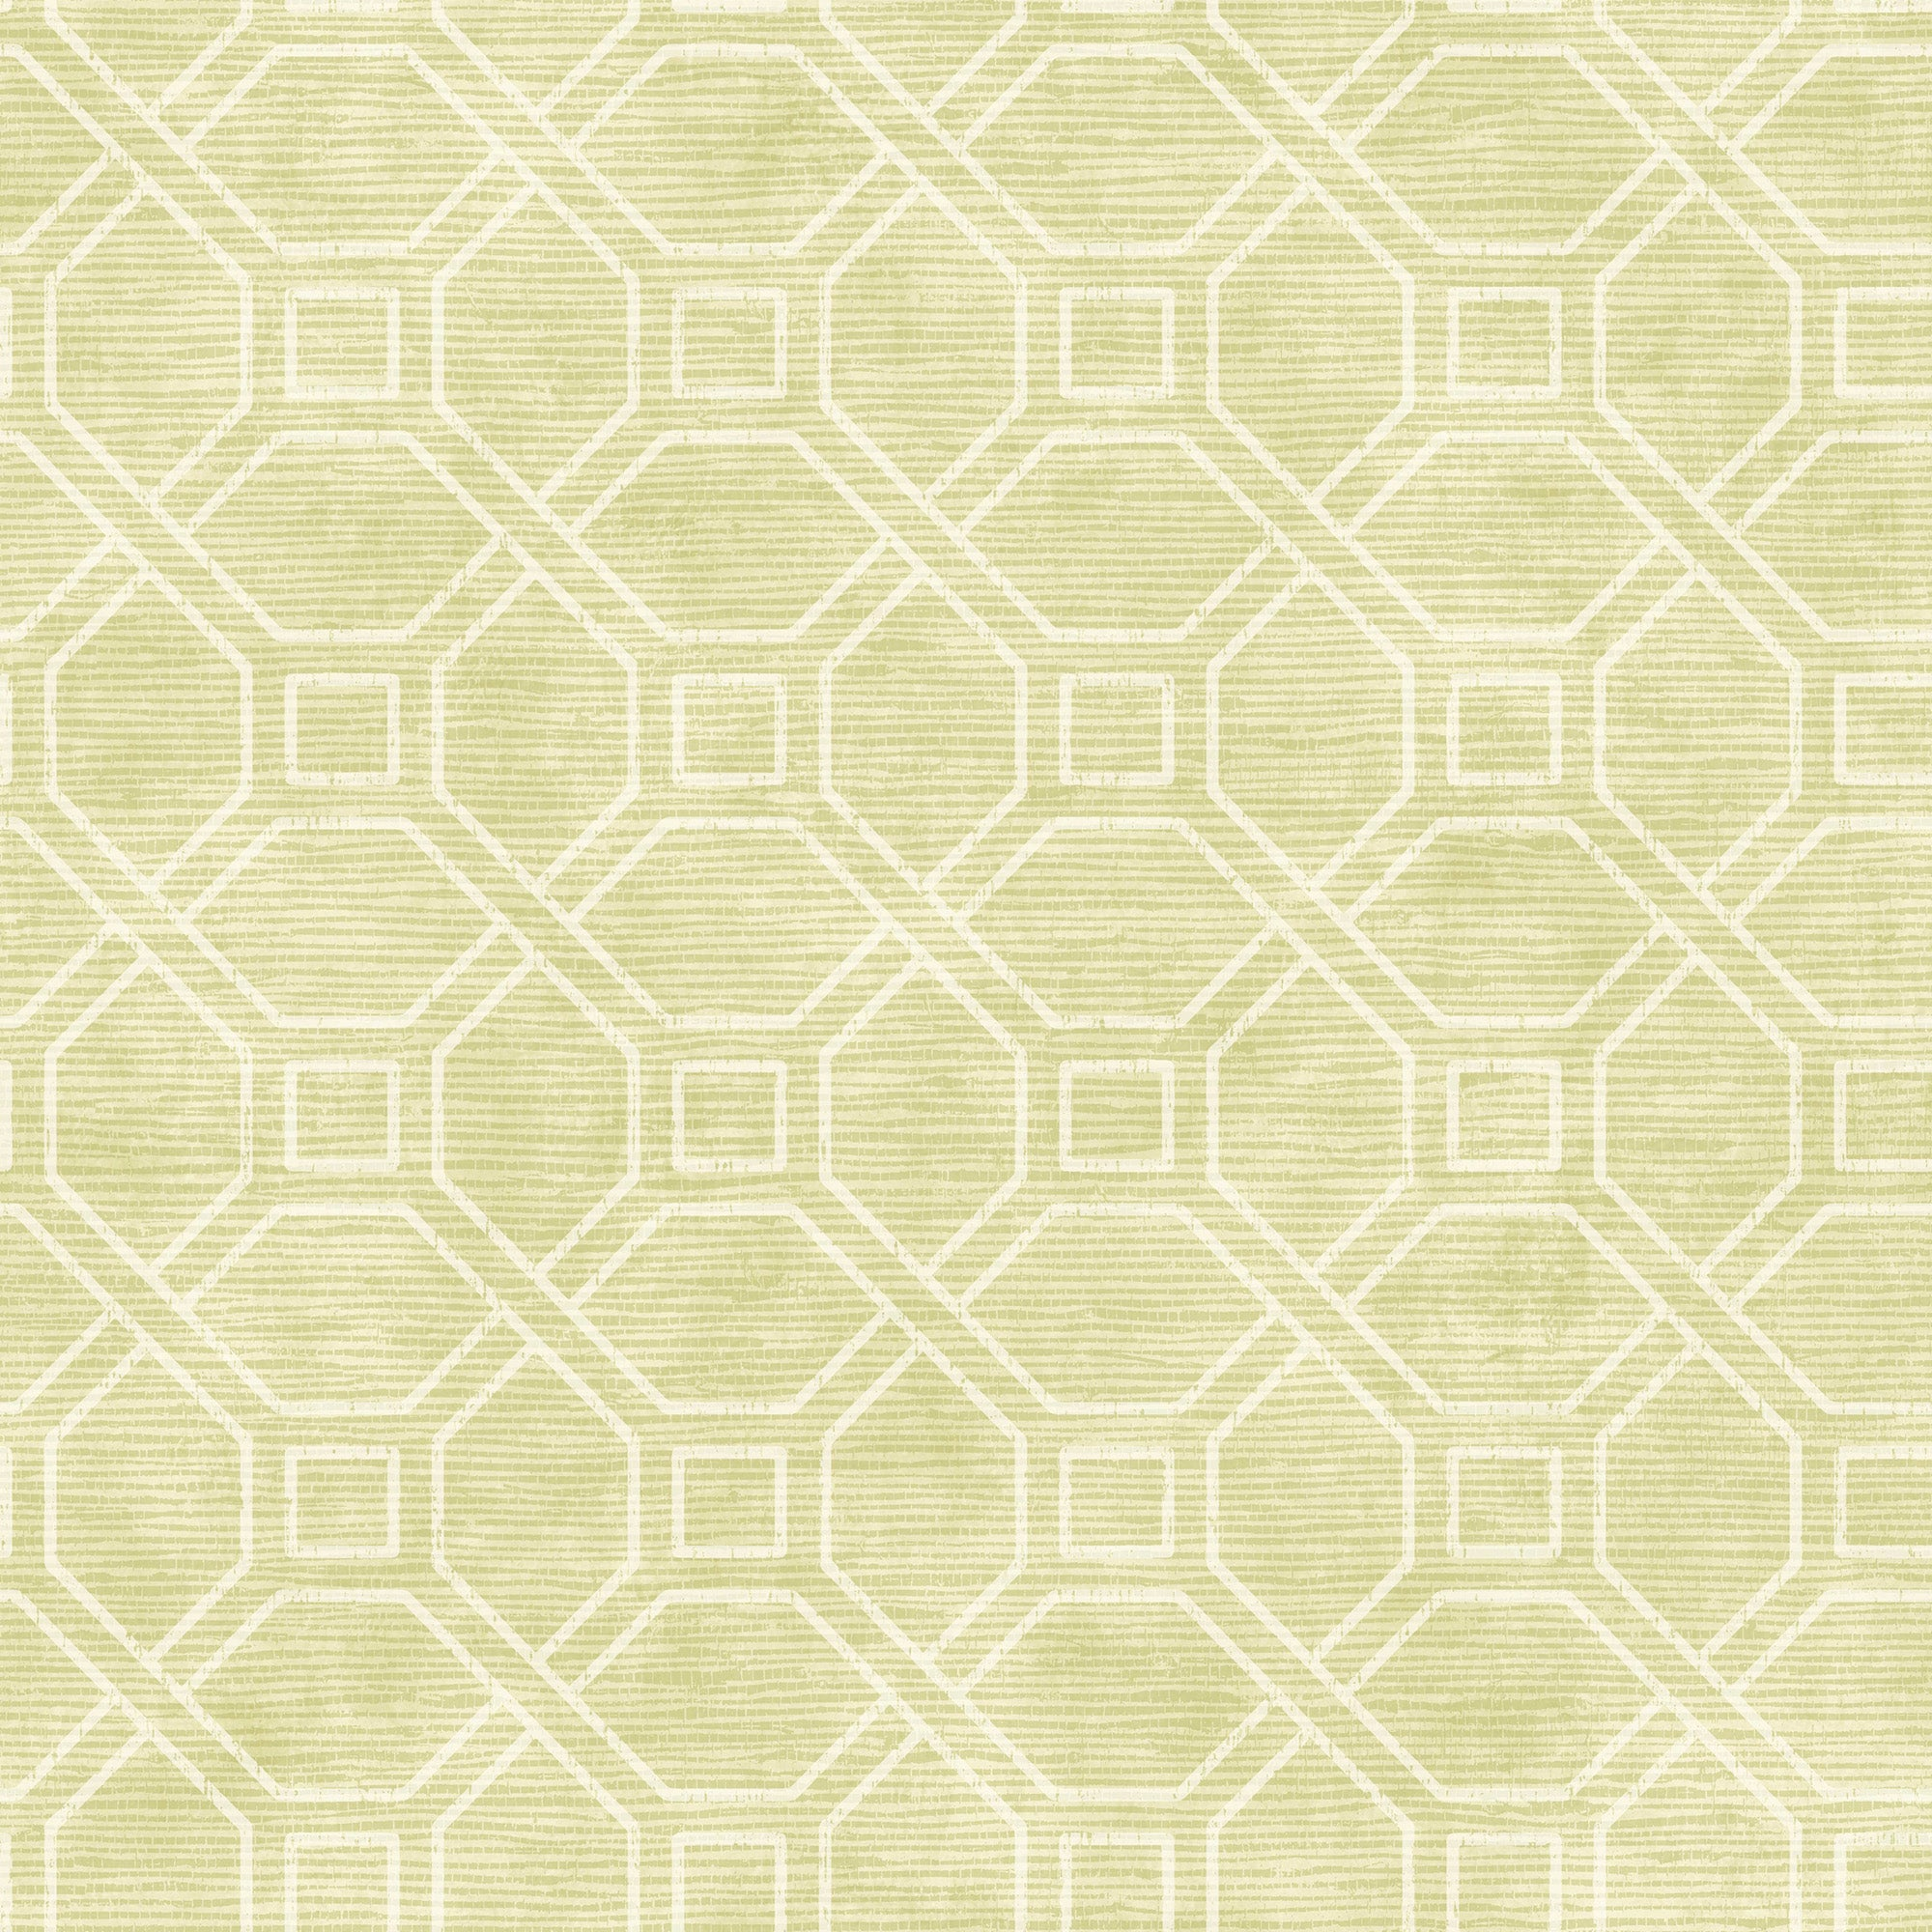 Coastal Trellis Wallpaper - Lime